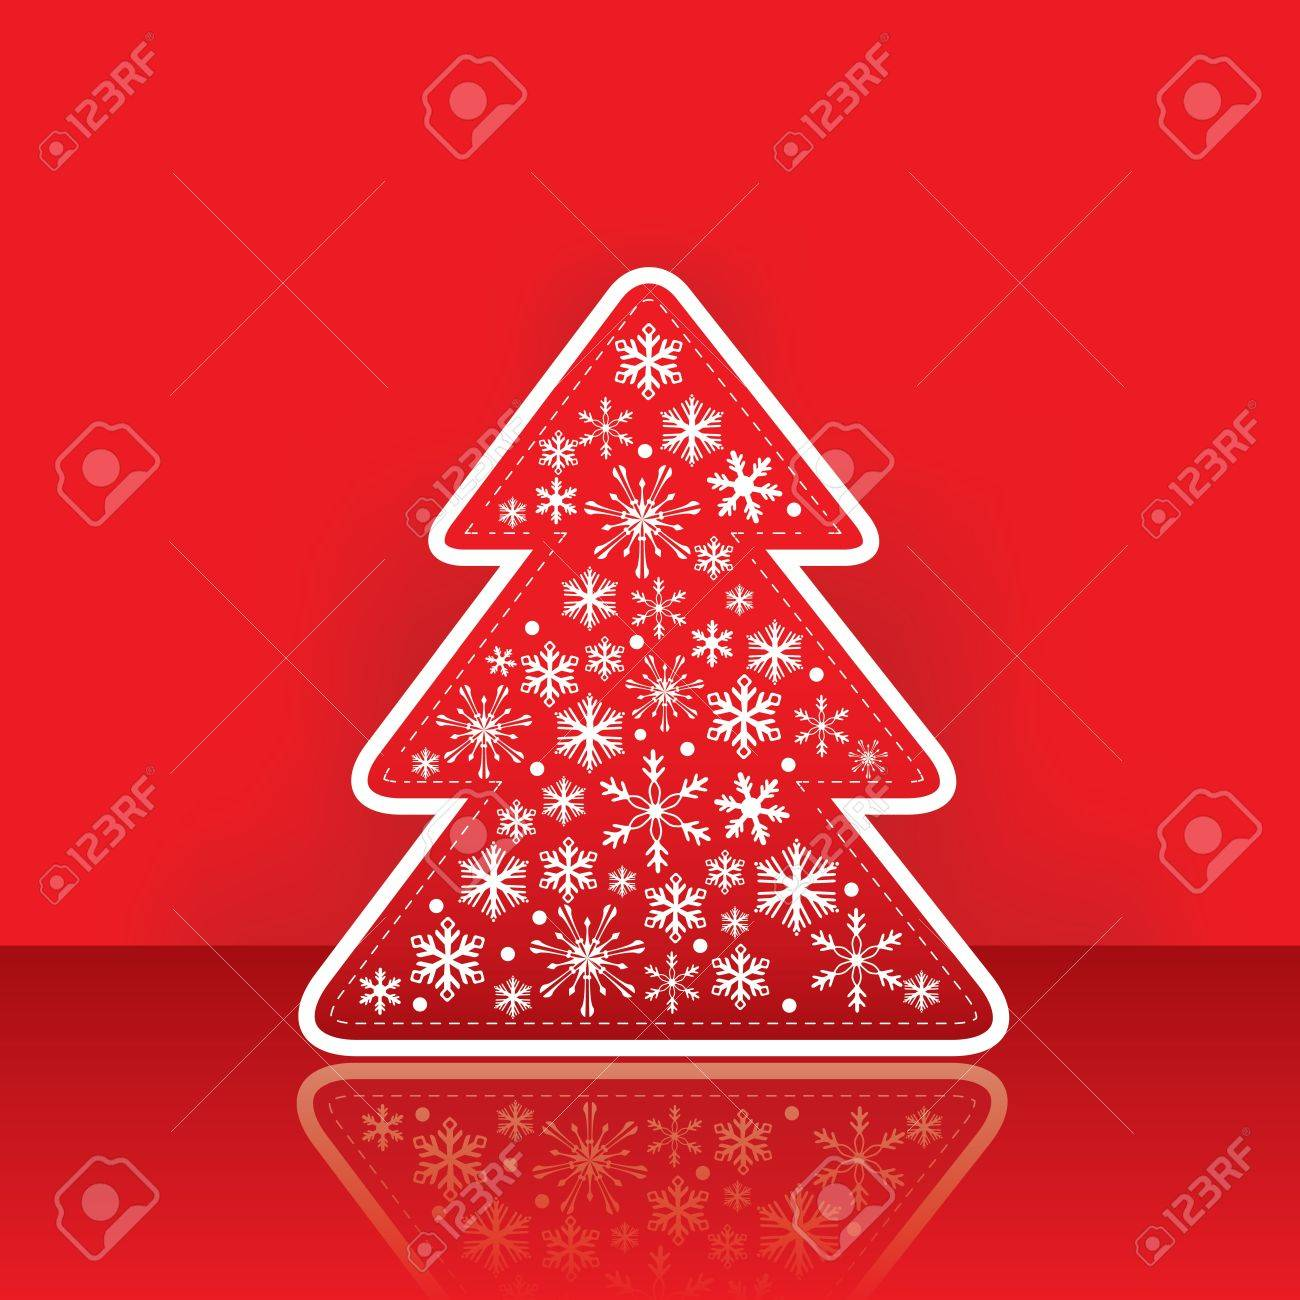 Christmas greeting card with tree with snowflake on the red traditional background Stock Vector - 10521919